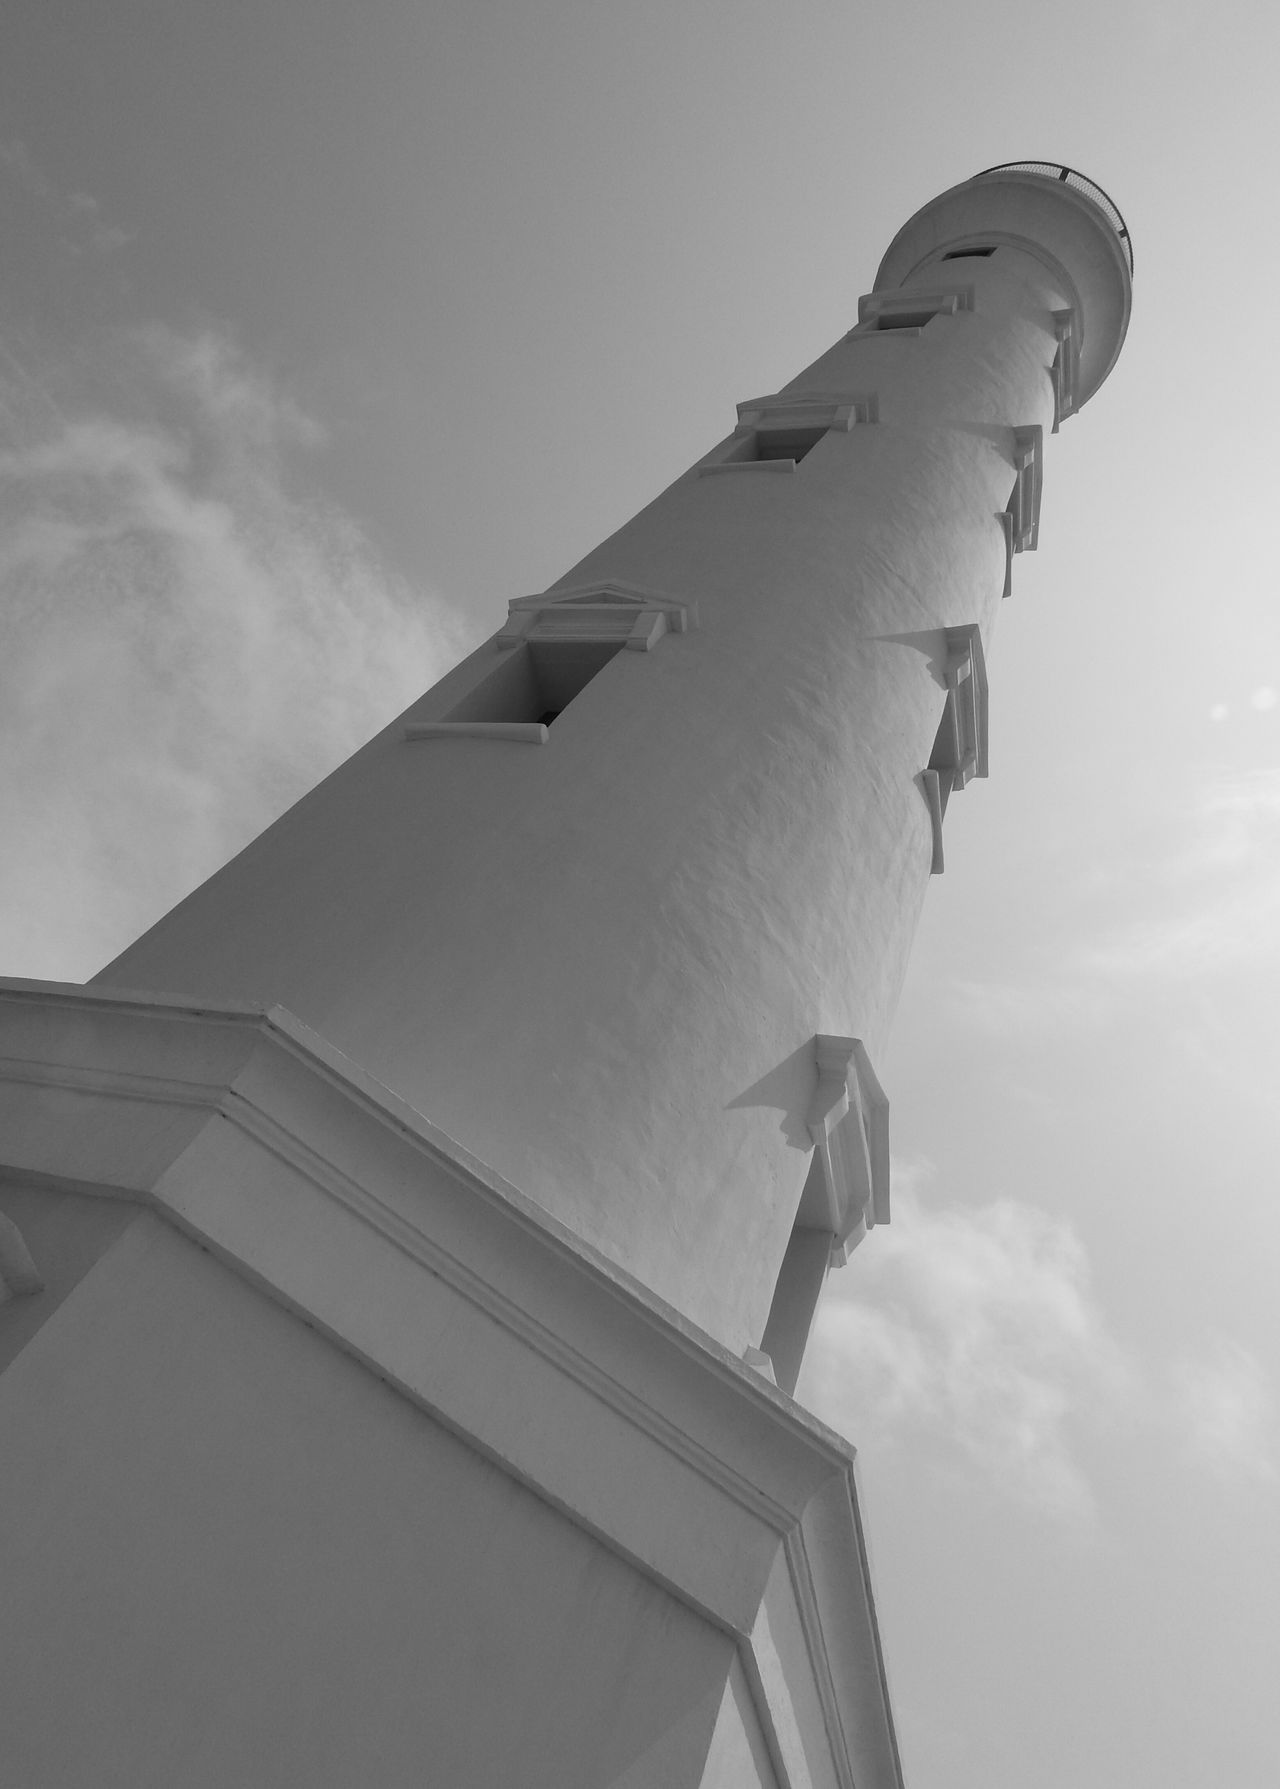 Architecture Built Structure California Lighthouse Sky And Clouds Aruba Travel Destinations Low Angle View Black And White Photography